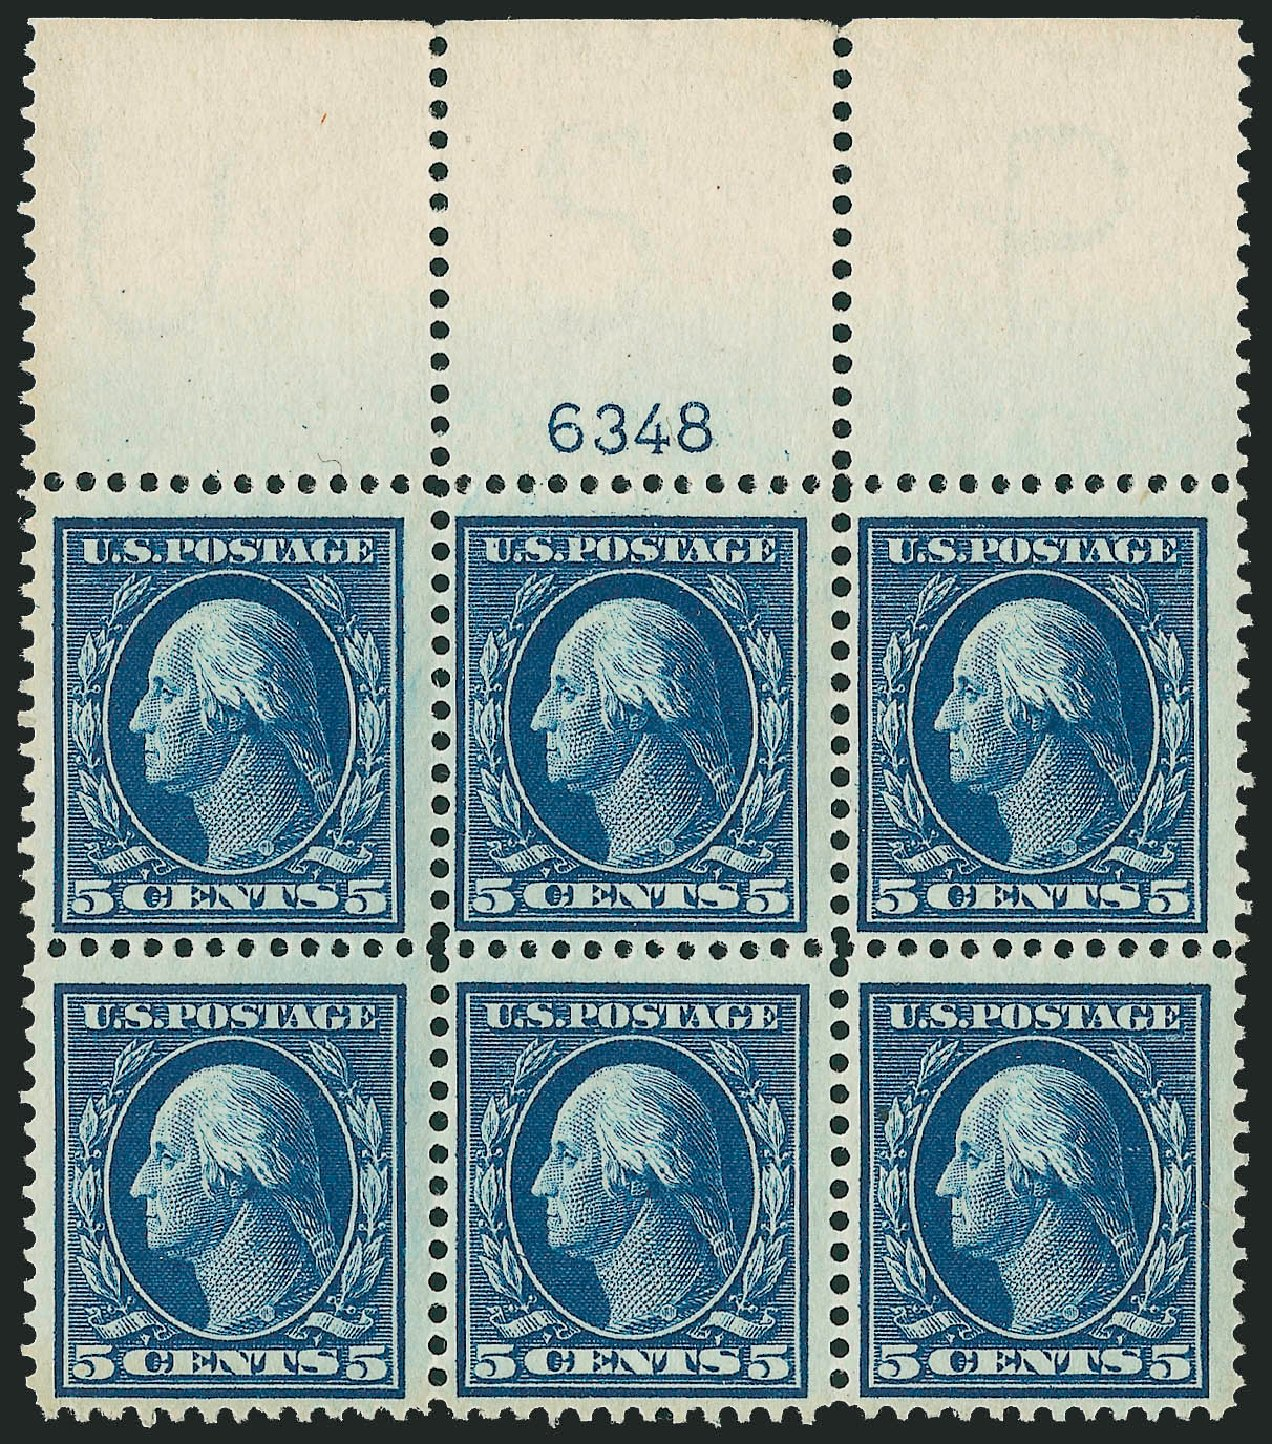 US Stamp Price Scott Cat. # 378 - 1911 5c Washington Perf 12. Robert Siegel Auction Galleries, Mar 2014, Sale 1067, Lot 1461